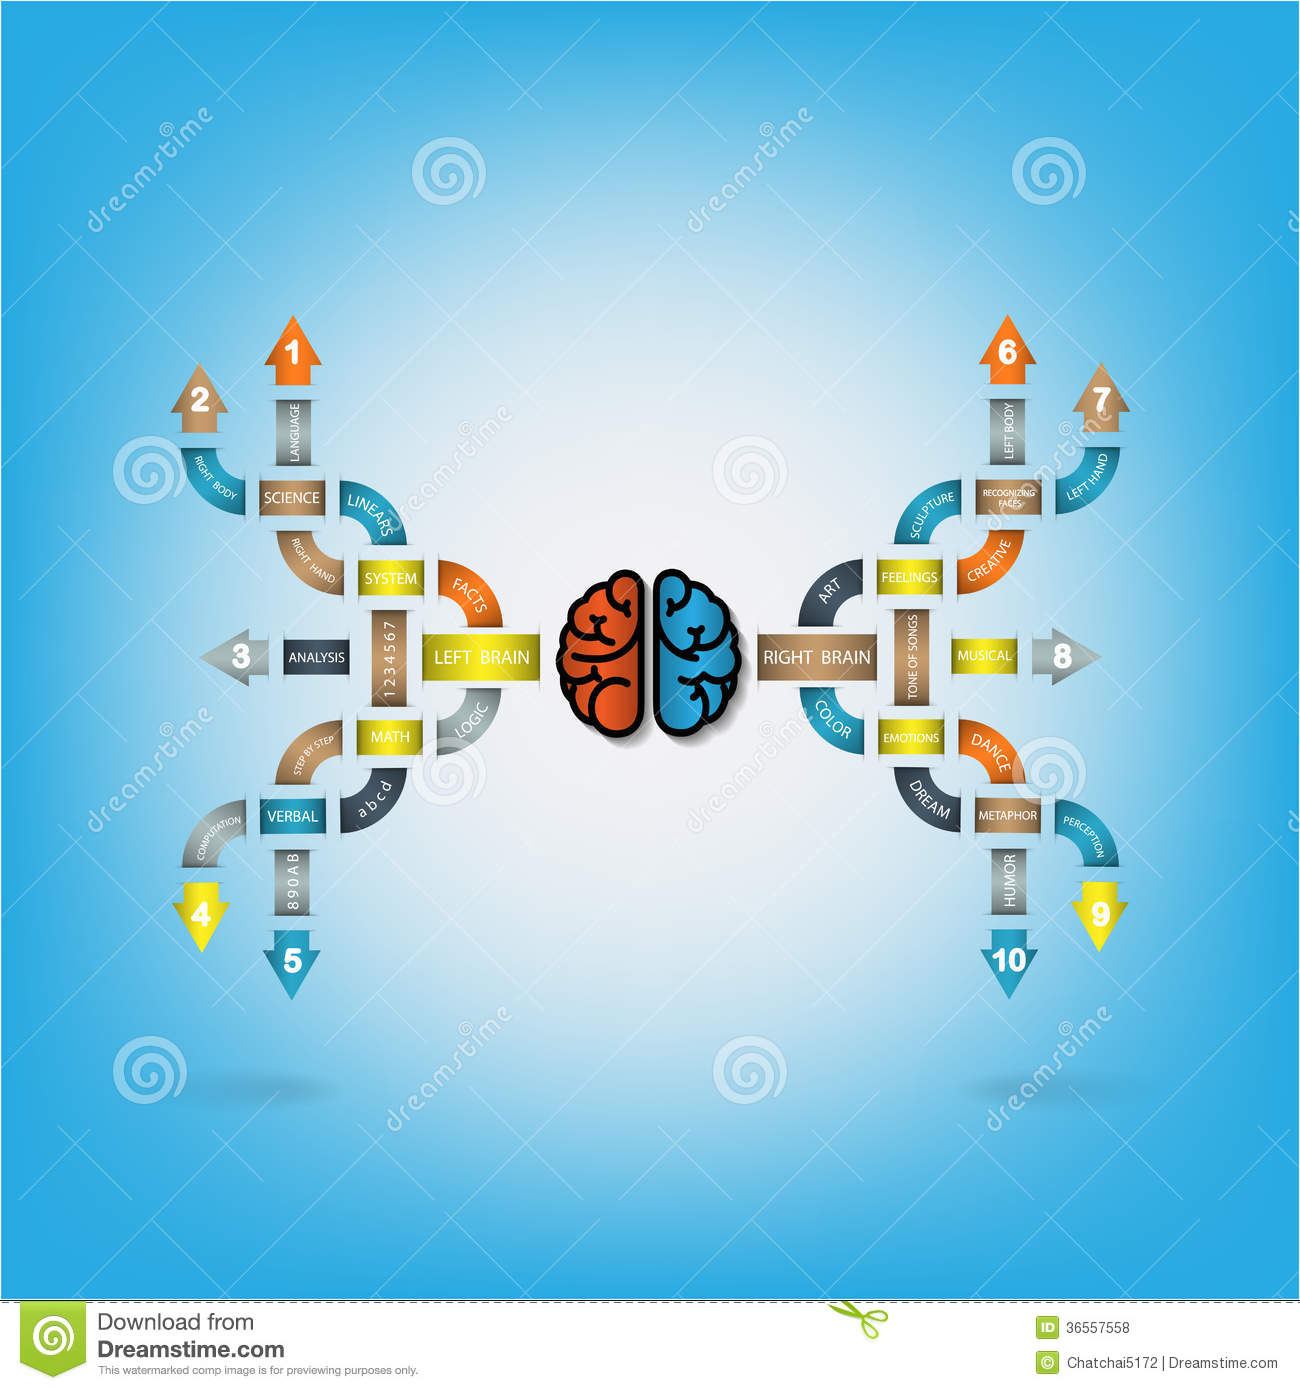 Creative Brain Idea Concept Background Stock Vector ...